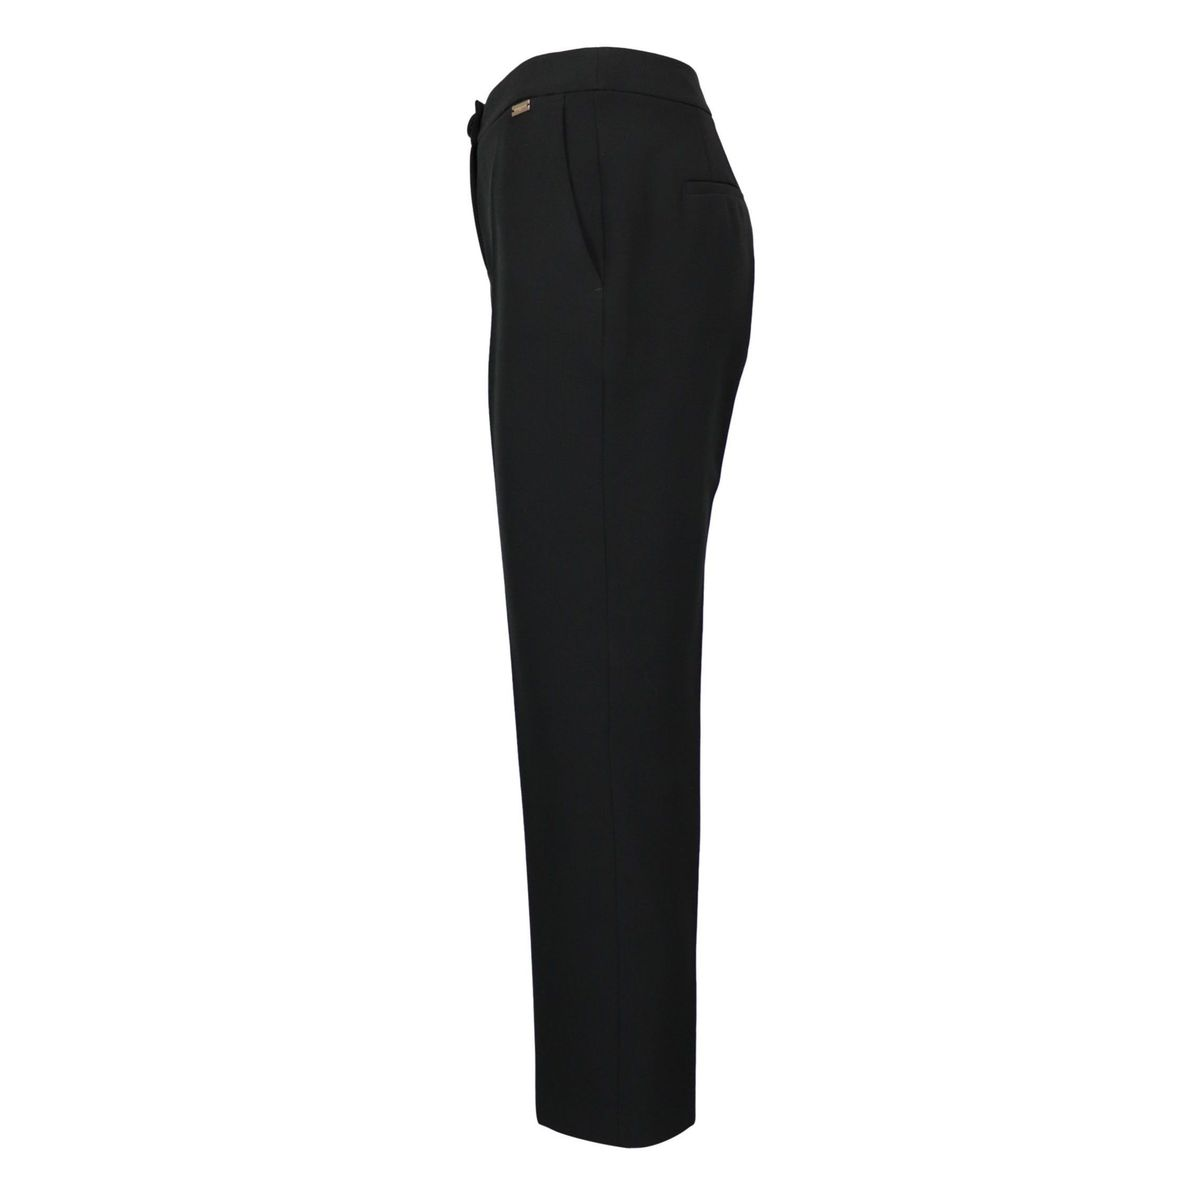 Erika crepe trousers with ironed crease and welt pockets Black Nenette